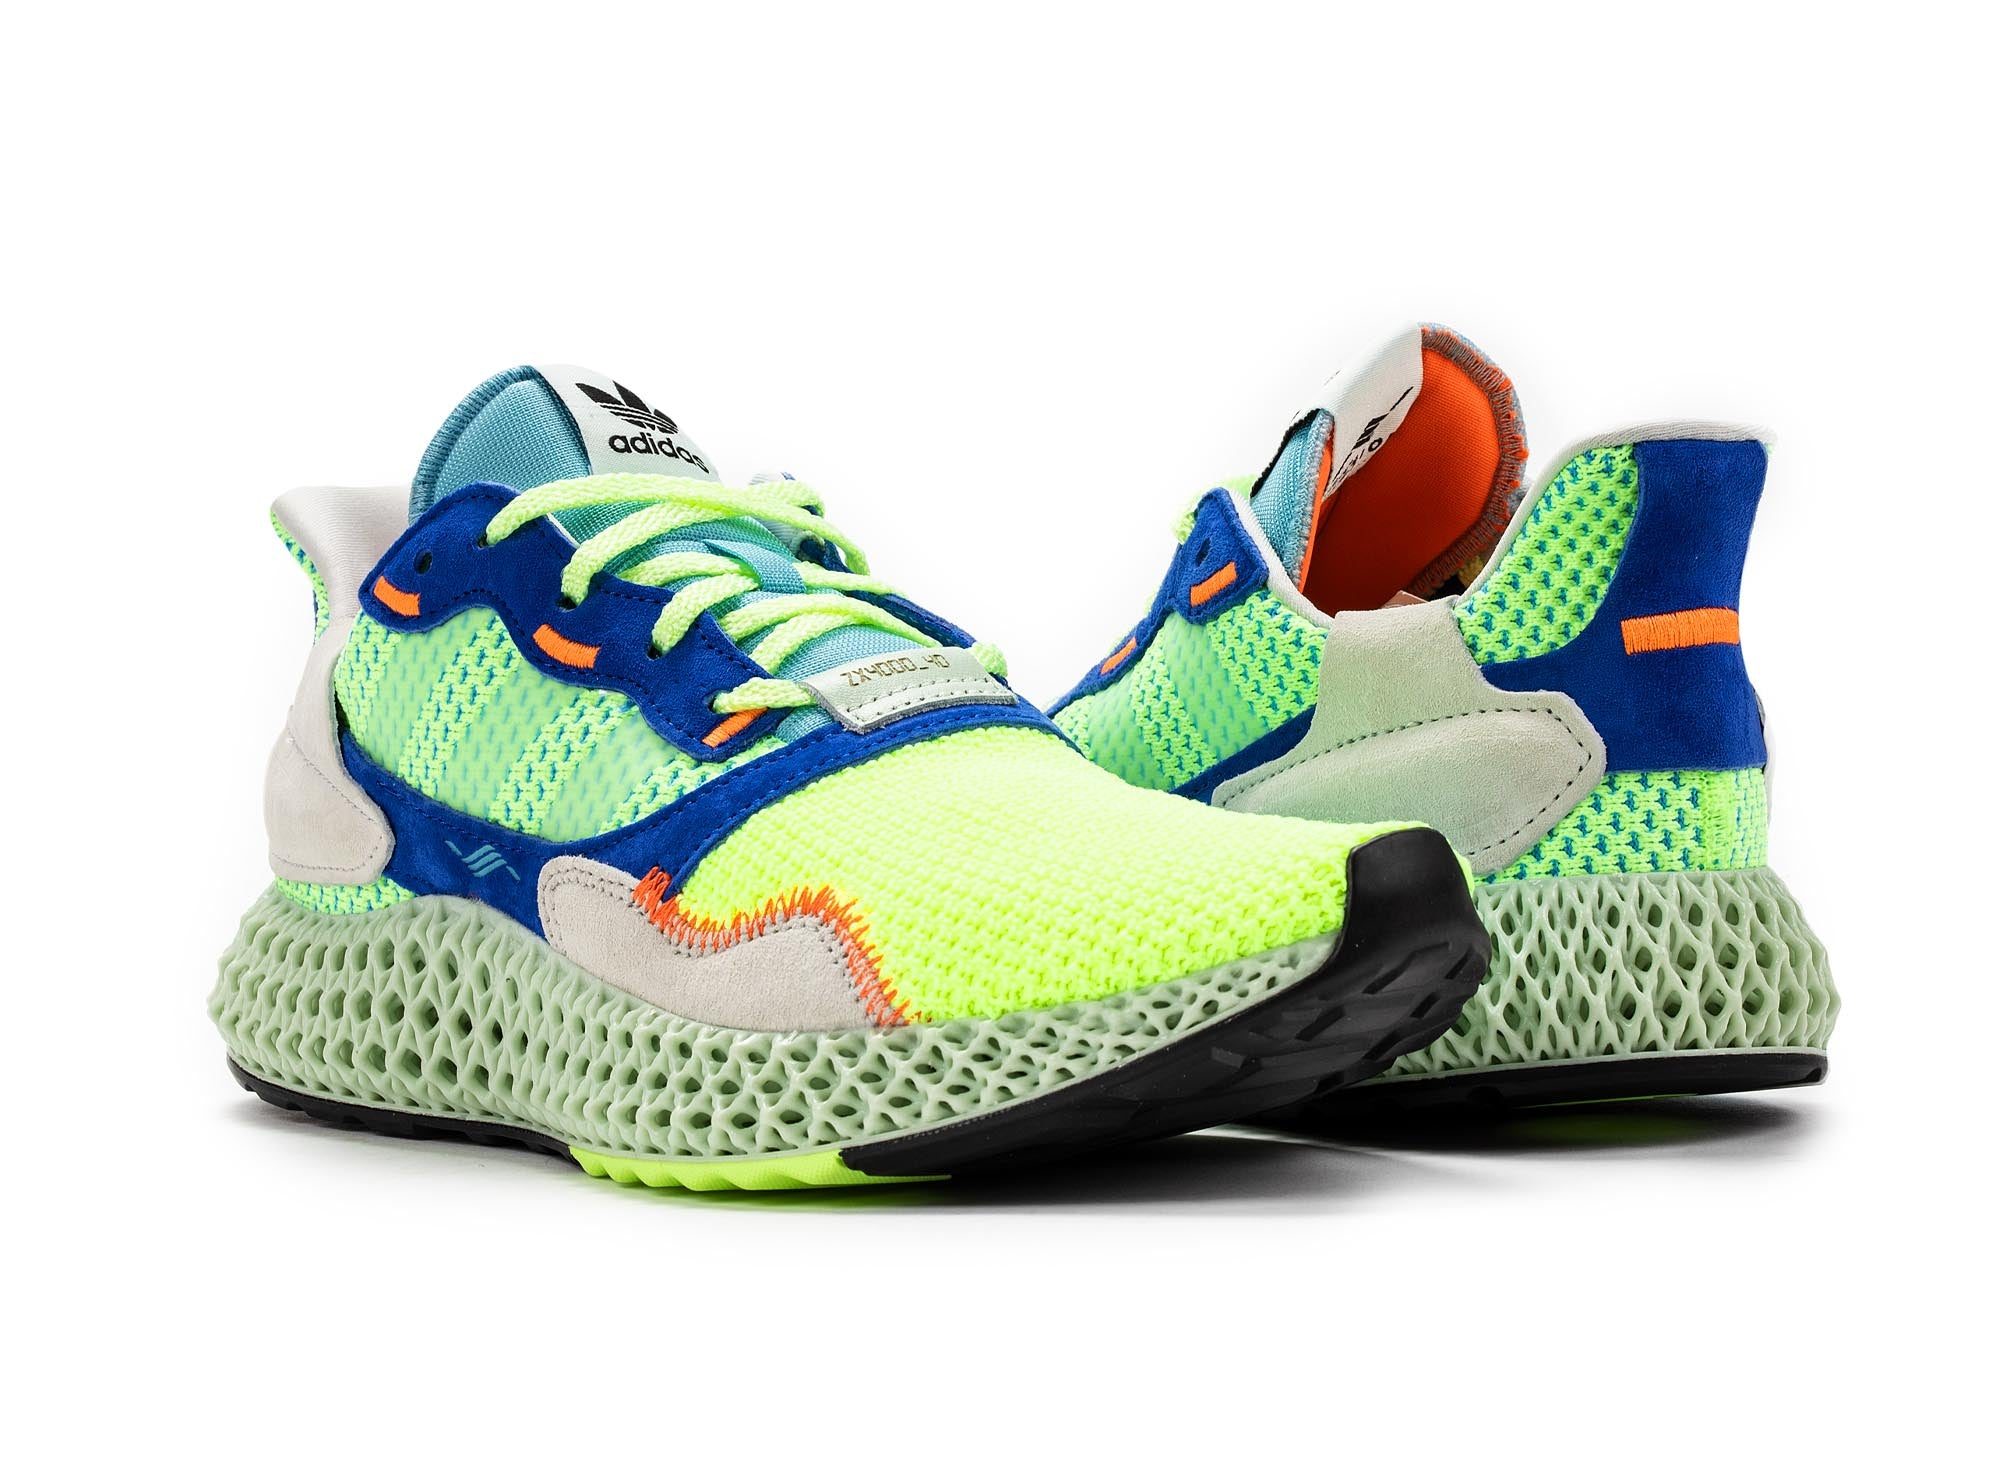 adidas ZX 4000 4D 'Easy Mint' - Oneness